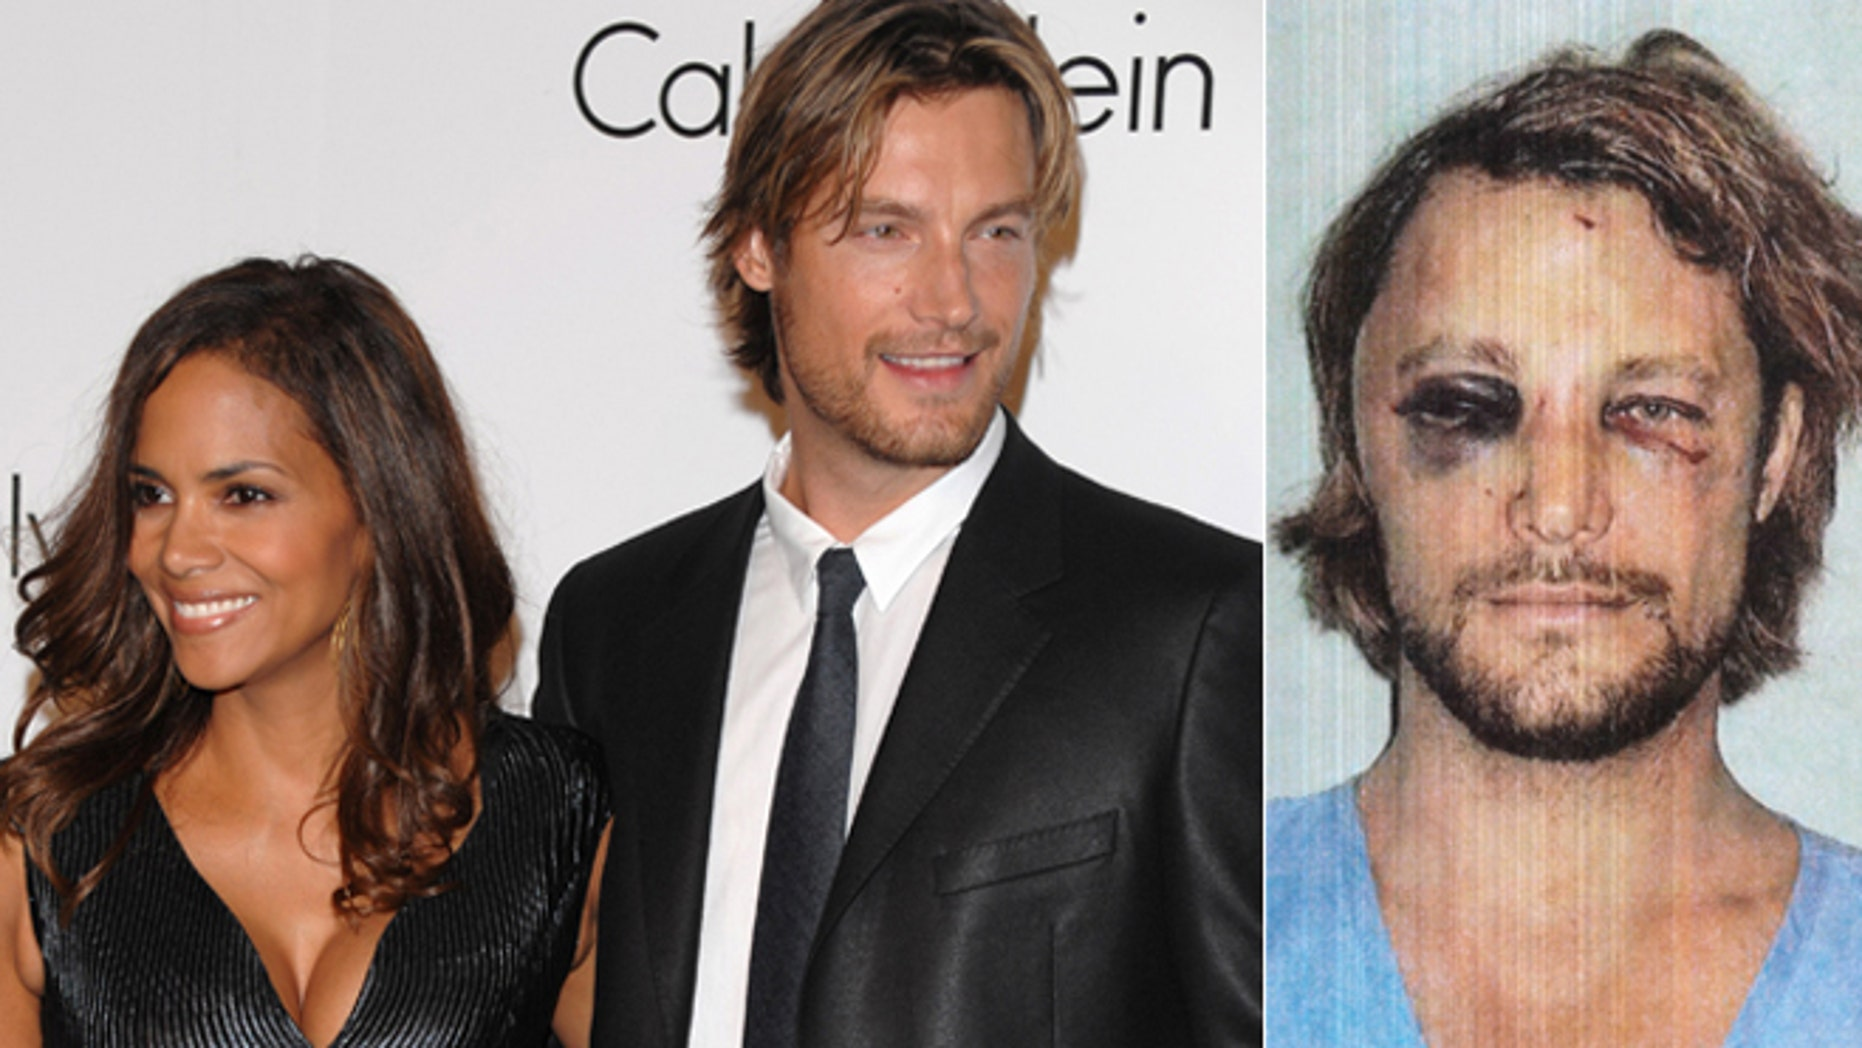 Model Gabriel Aubrey and actress Halle Berry attend the Calvin Klein 40th anniversary party during Fashion Week in New York on Sept. 7, 2008. Gabriel Aubrey after a fight with Berry's fiance on Nov. 22, 2012.